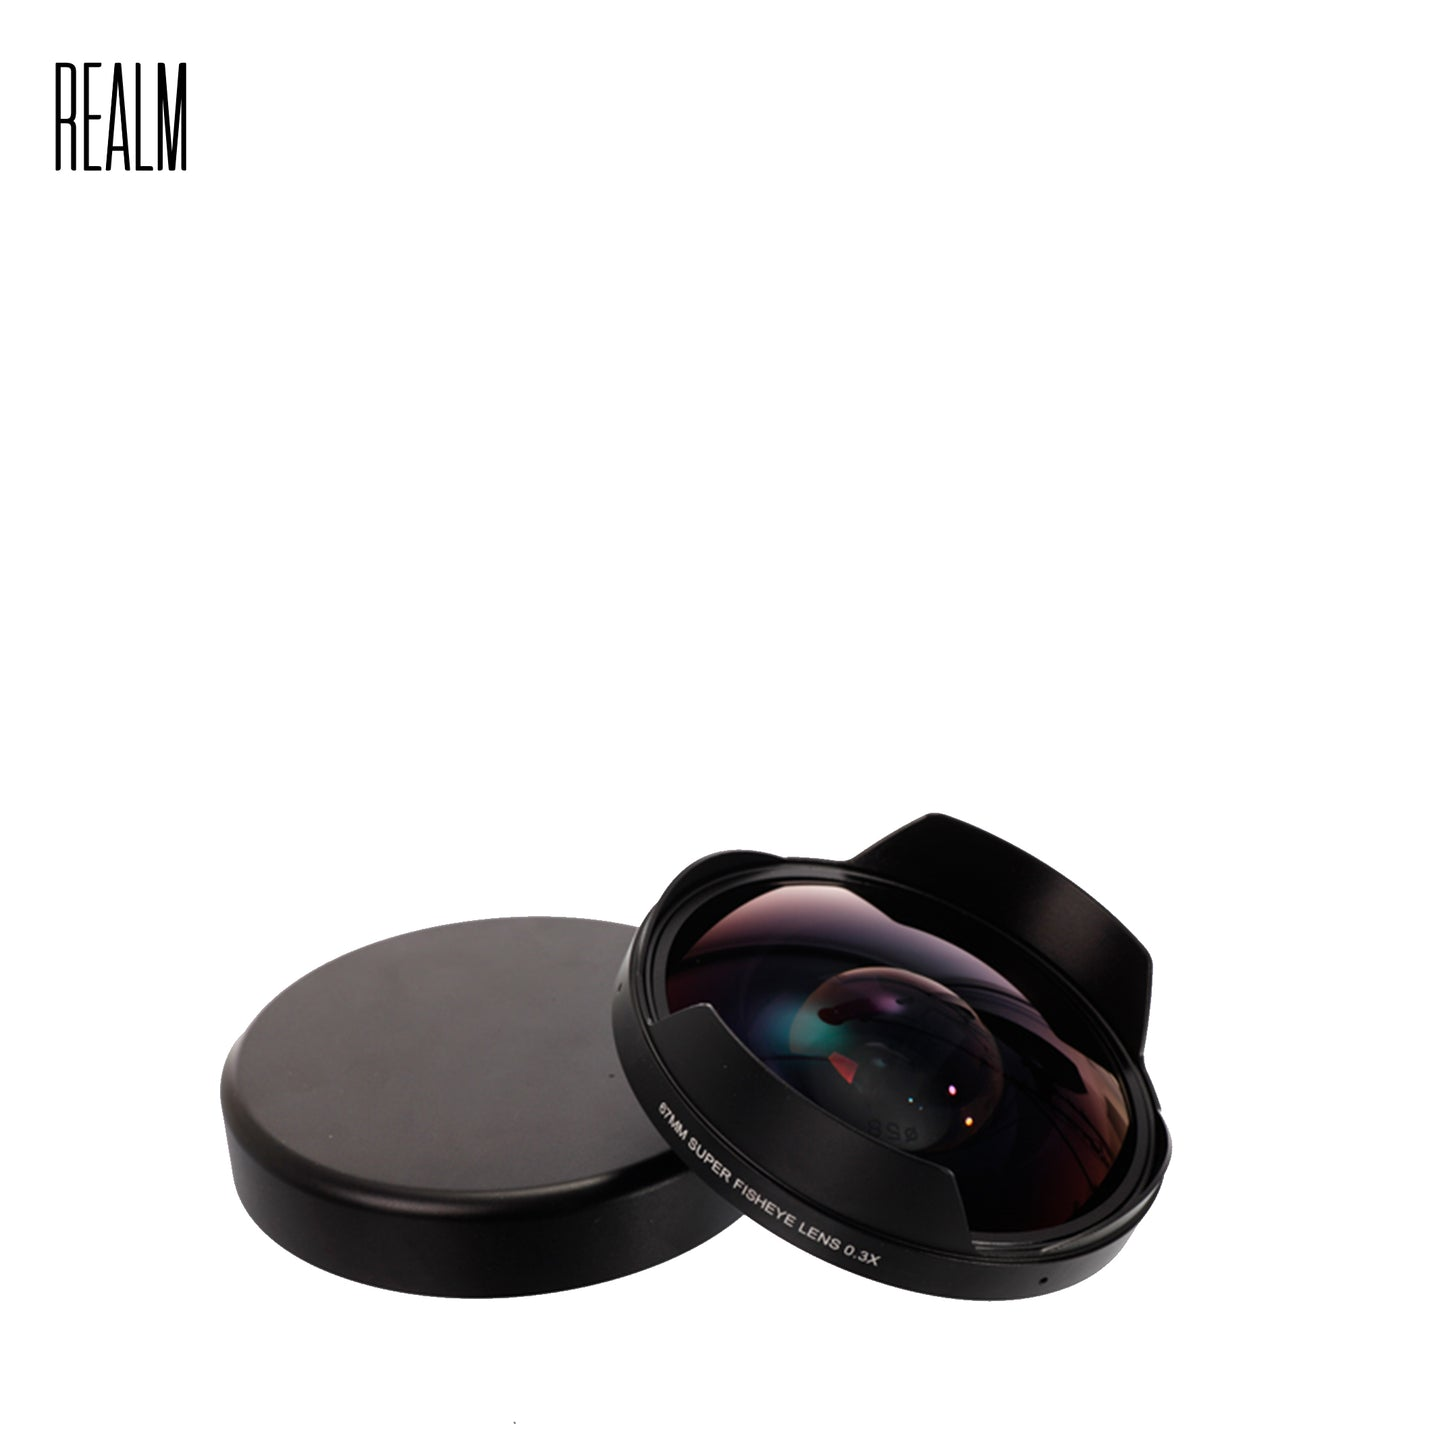 67mm 0.3x Fisheye Lens - REALM DISTRIBUTION